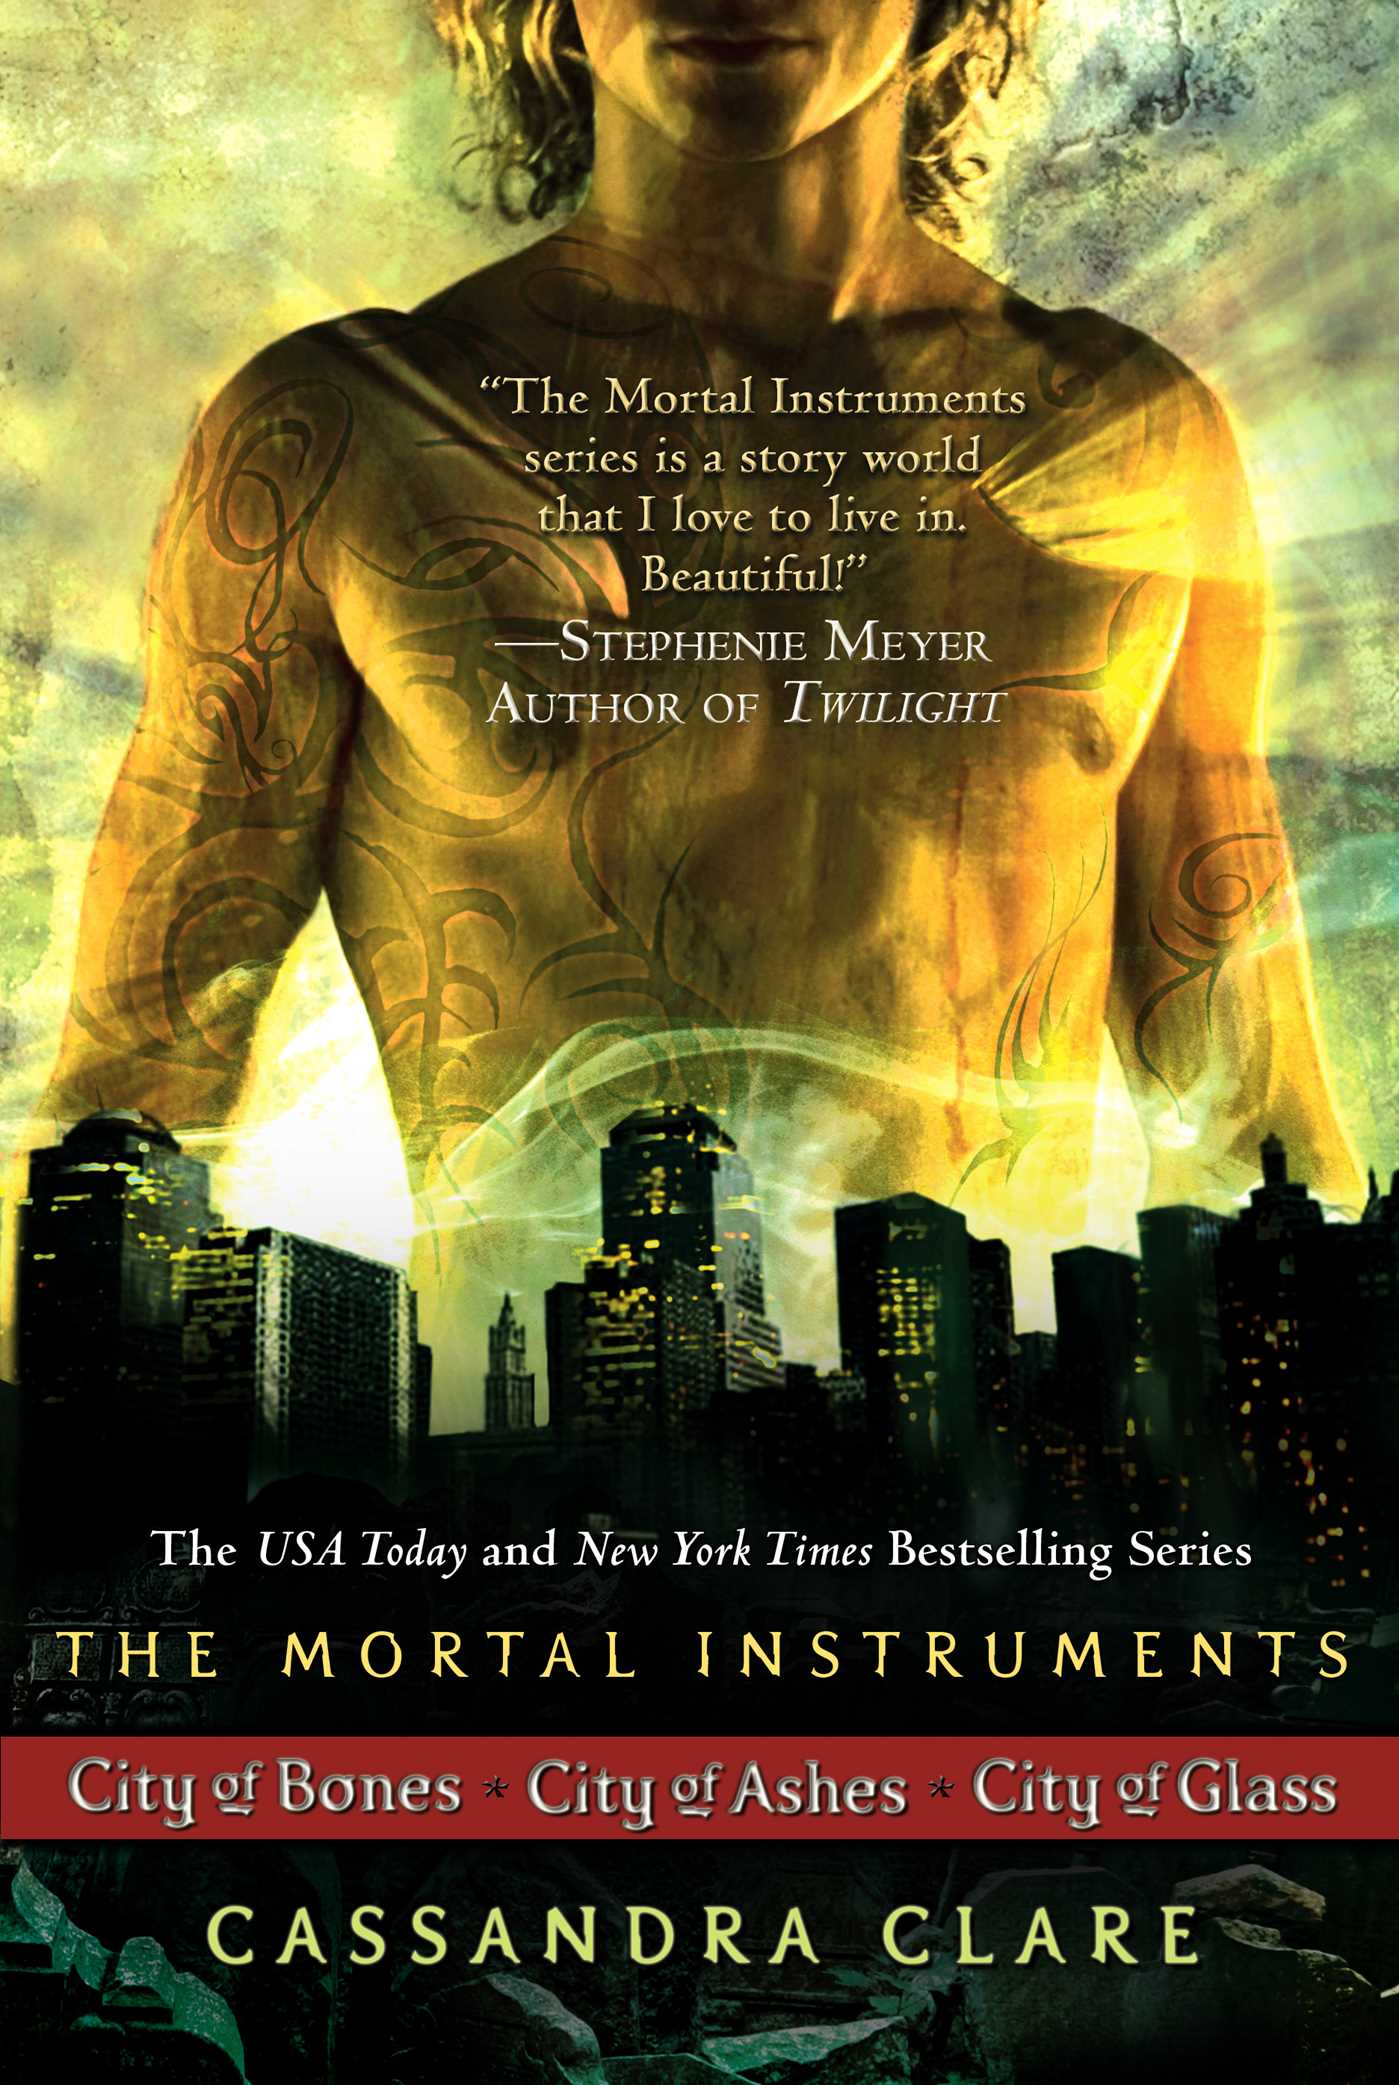 Cassandra clare the mortal instrument series 3 books 9781442430044 hr